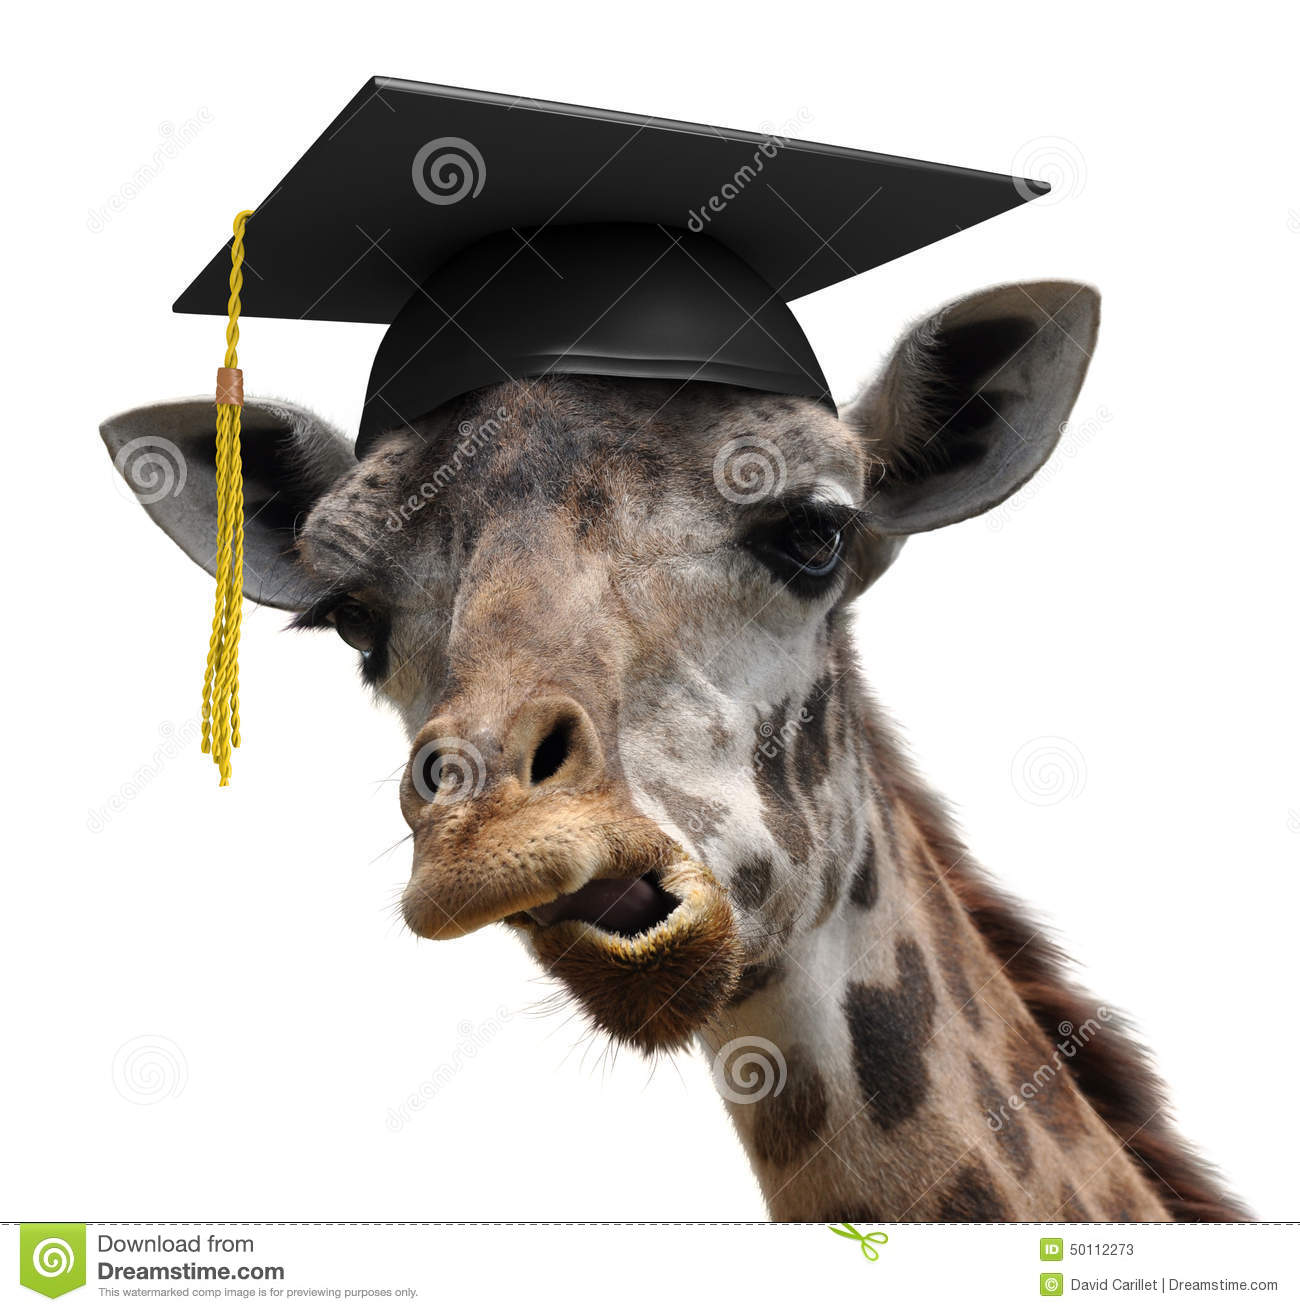 unusual animal portrait of a goofy giraffe college free vector graduation cap graduation cap vector download